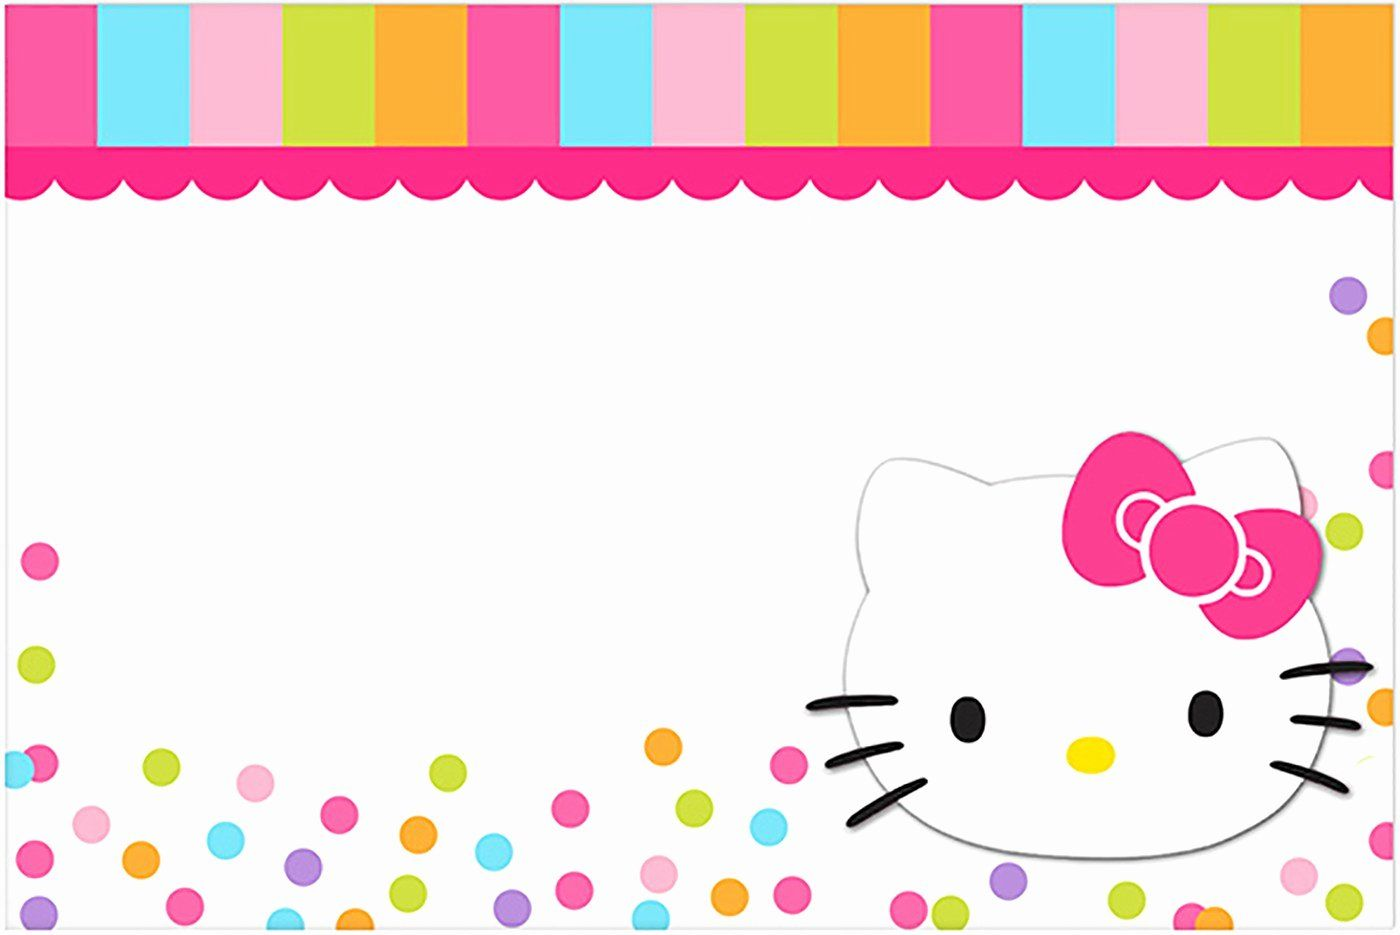 Hello Kitty Birthday Invitations Awesome Hello Kitty Free Printable Invitation Te Hello Kitty Invitations Hello Kitty Birthday Invitations Hello Kitty Birthday